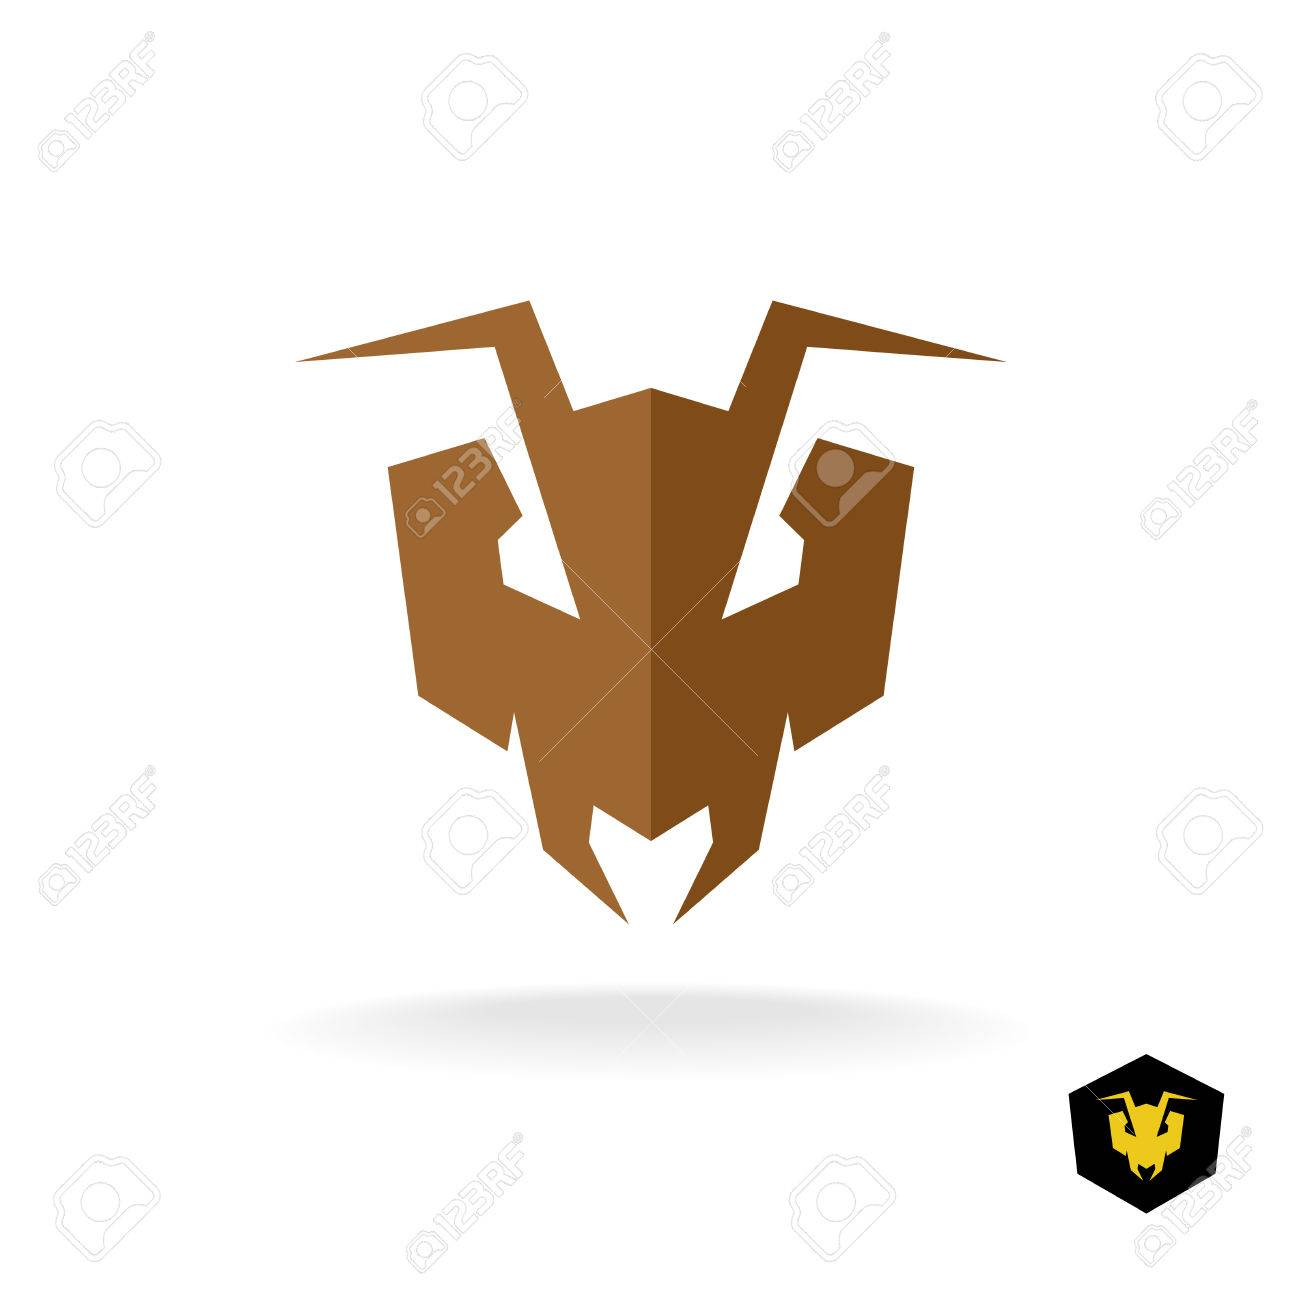 Serious Face Of The Predator Bulldog Ant Stylized Sign Stock Vector